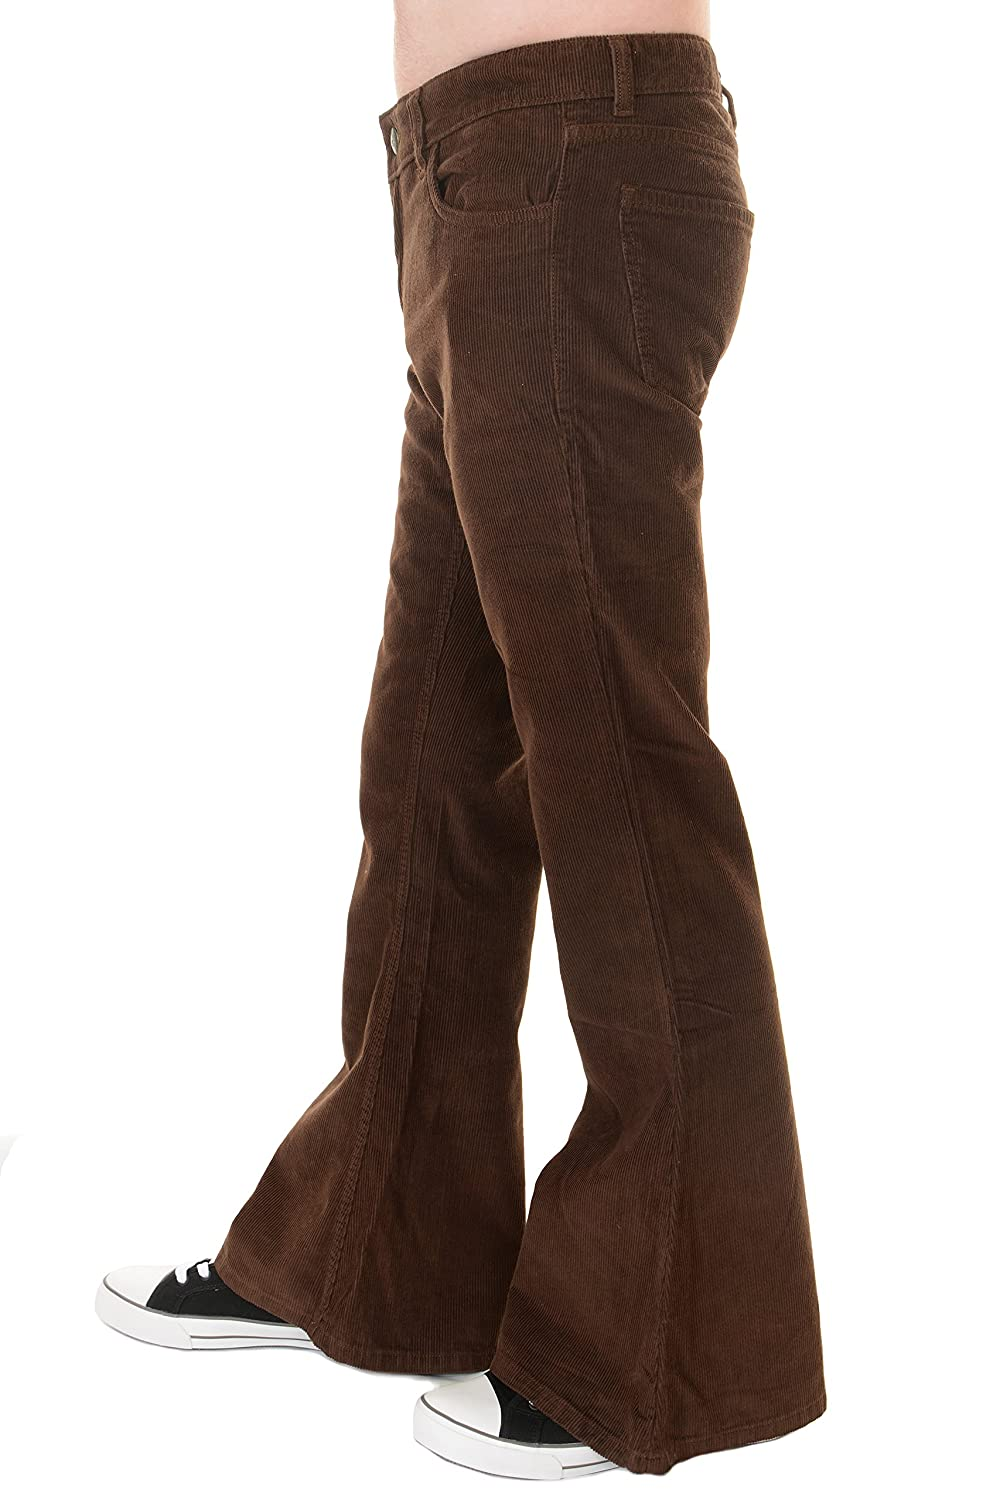 2019 professional rock-bottom price elegant shoes Run & Fly Mens 70s Vintage Retro Brown Corduroy Bell Bottom Flares